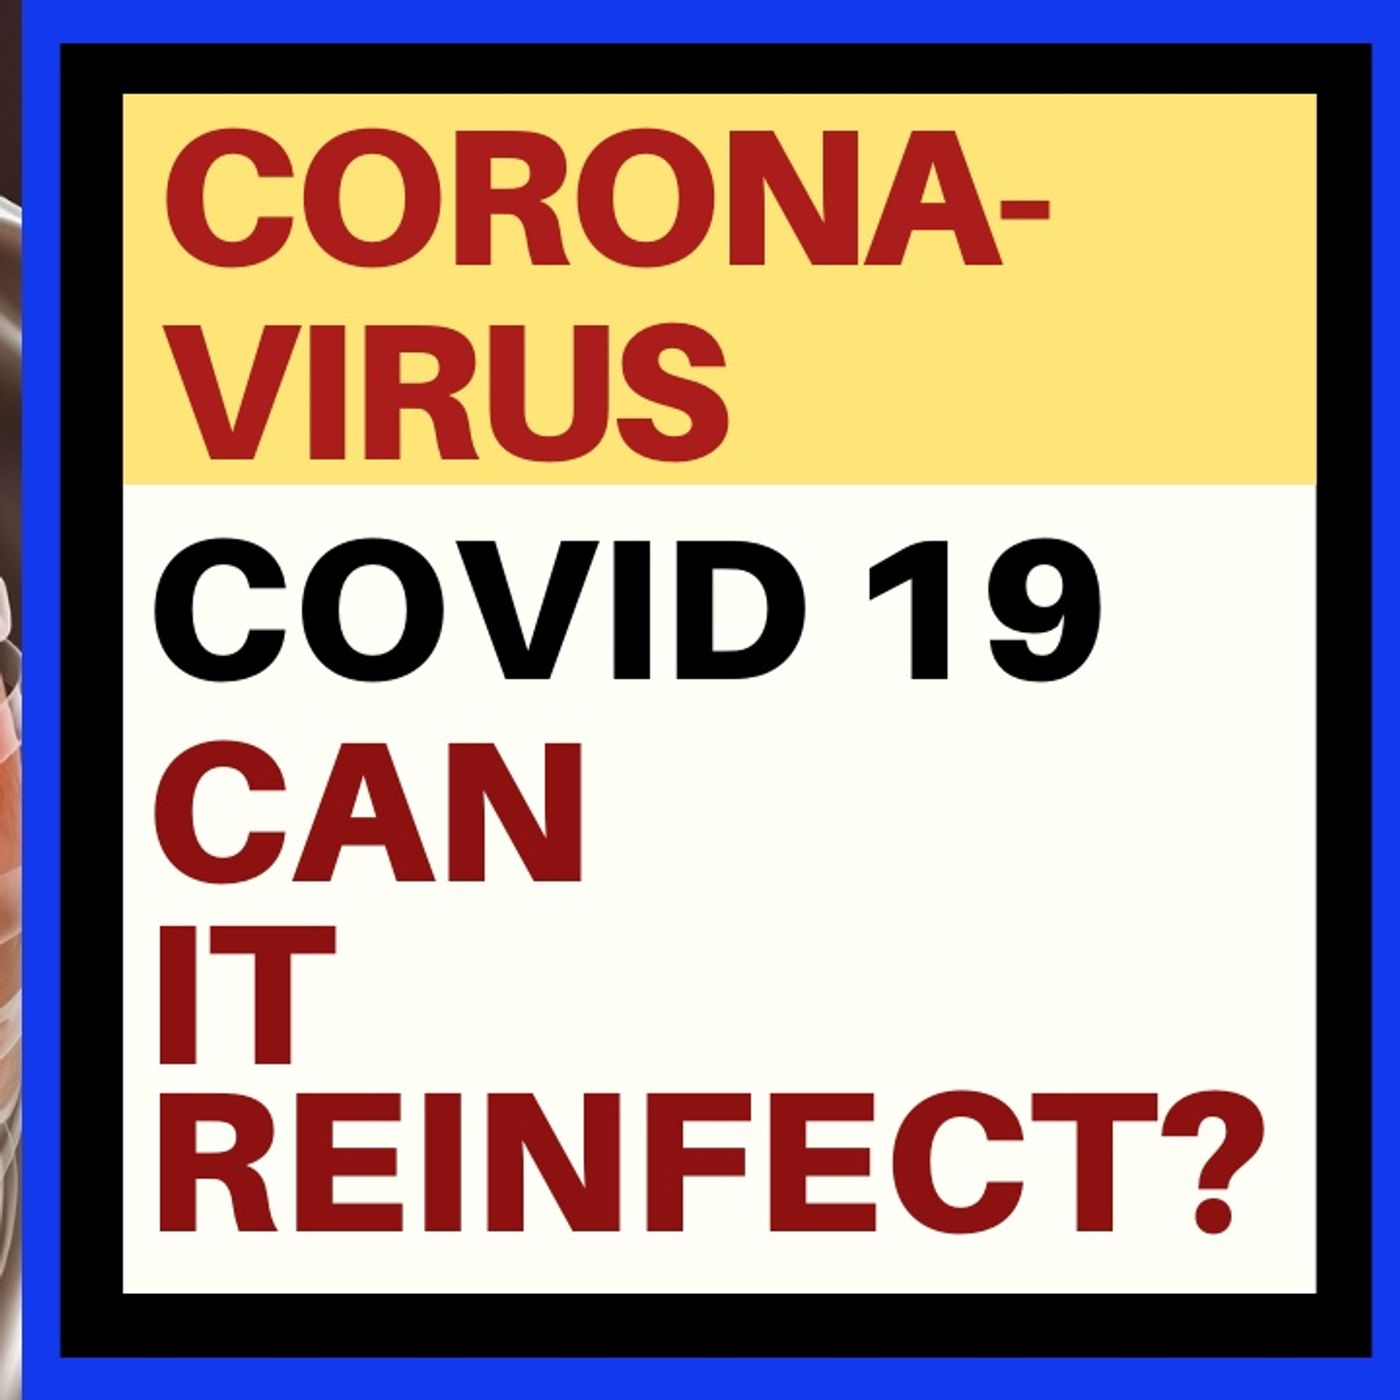 CAN THE CORONAVIRUS REINFECT YOU AND BECOME WORSE?